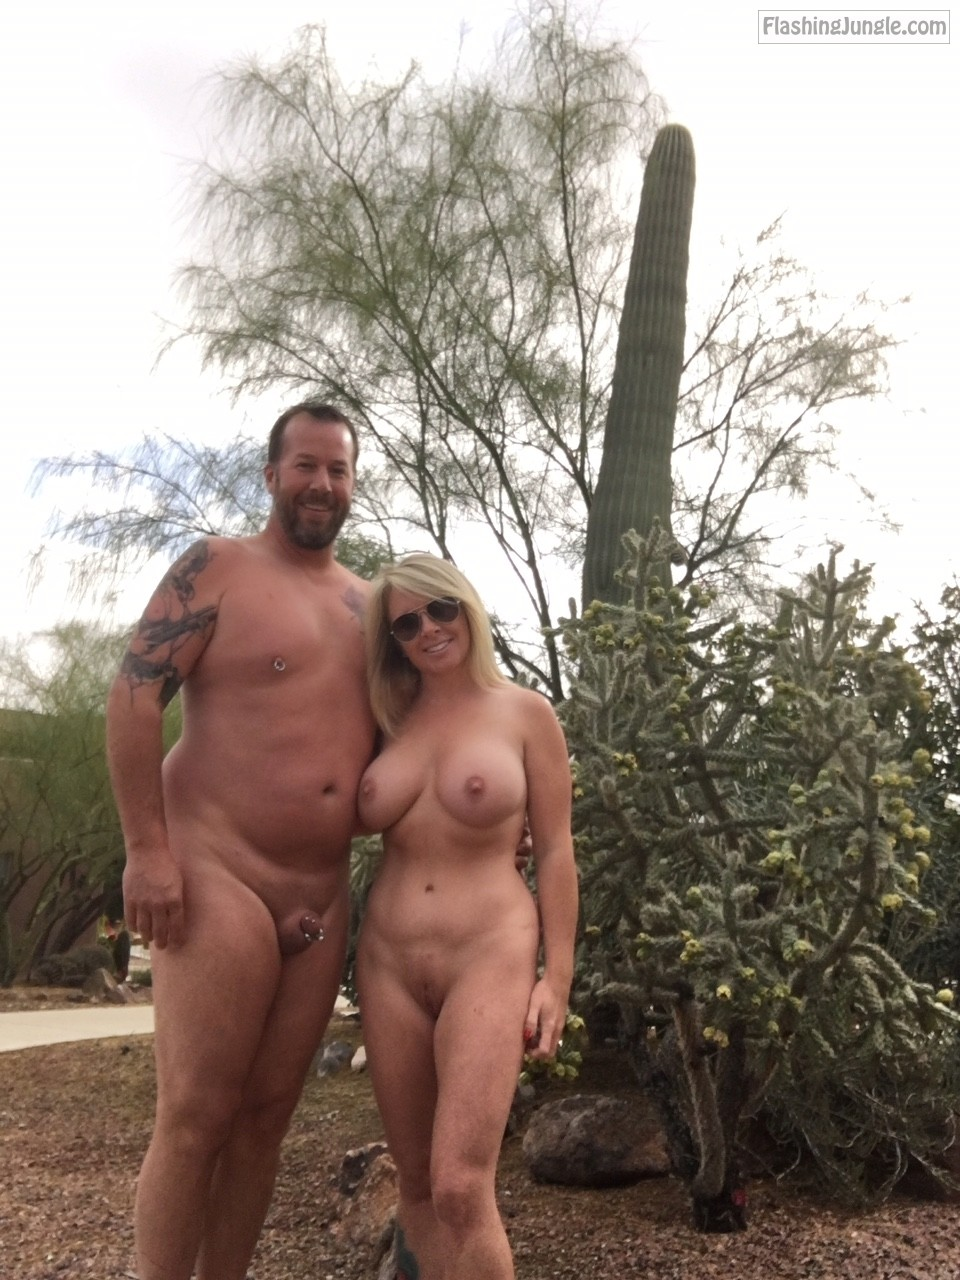 Real couple public nudity and wife sharing photos @geemanandwoman public nudity milf pics howife